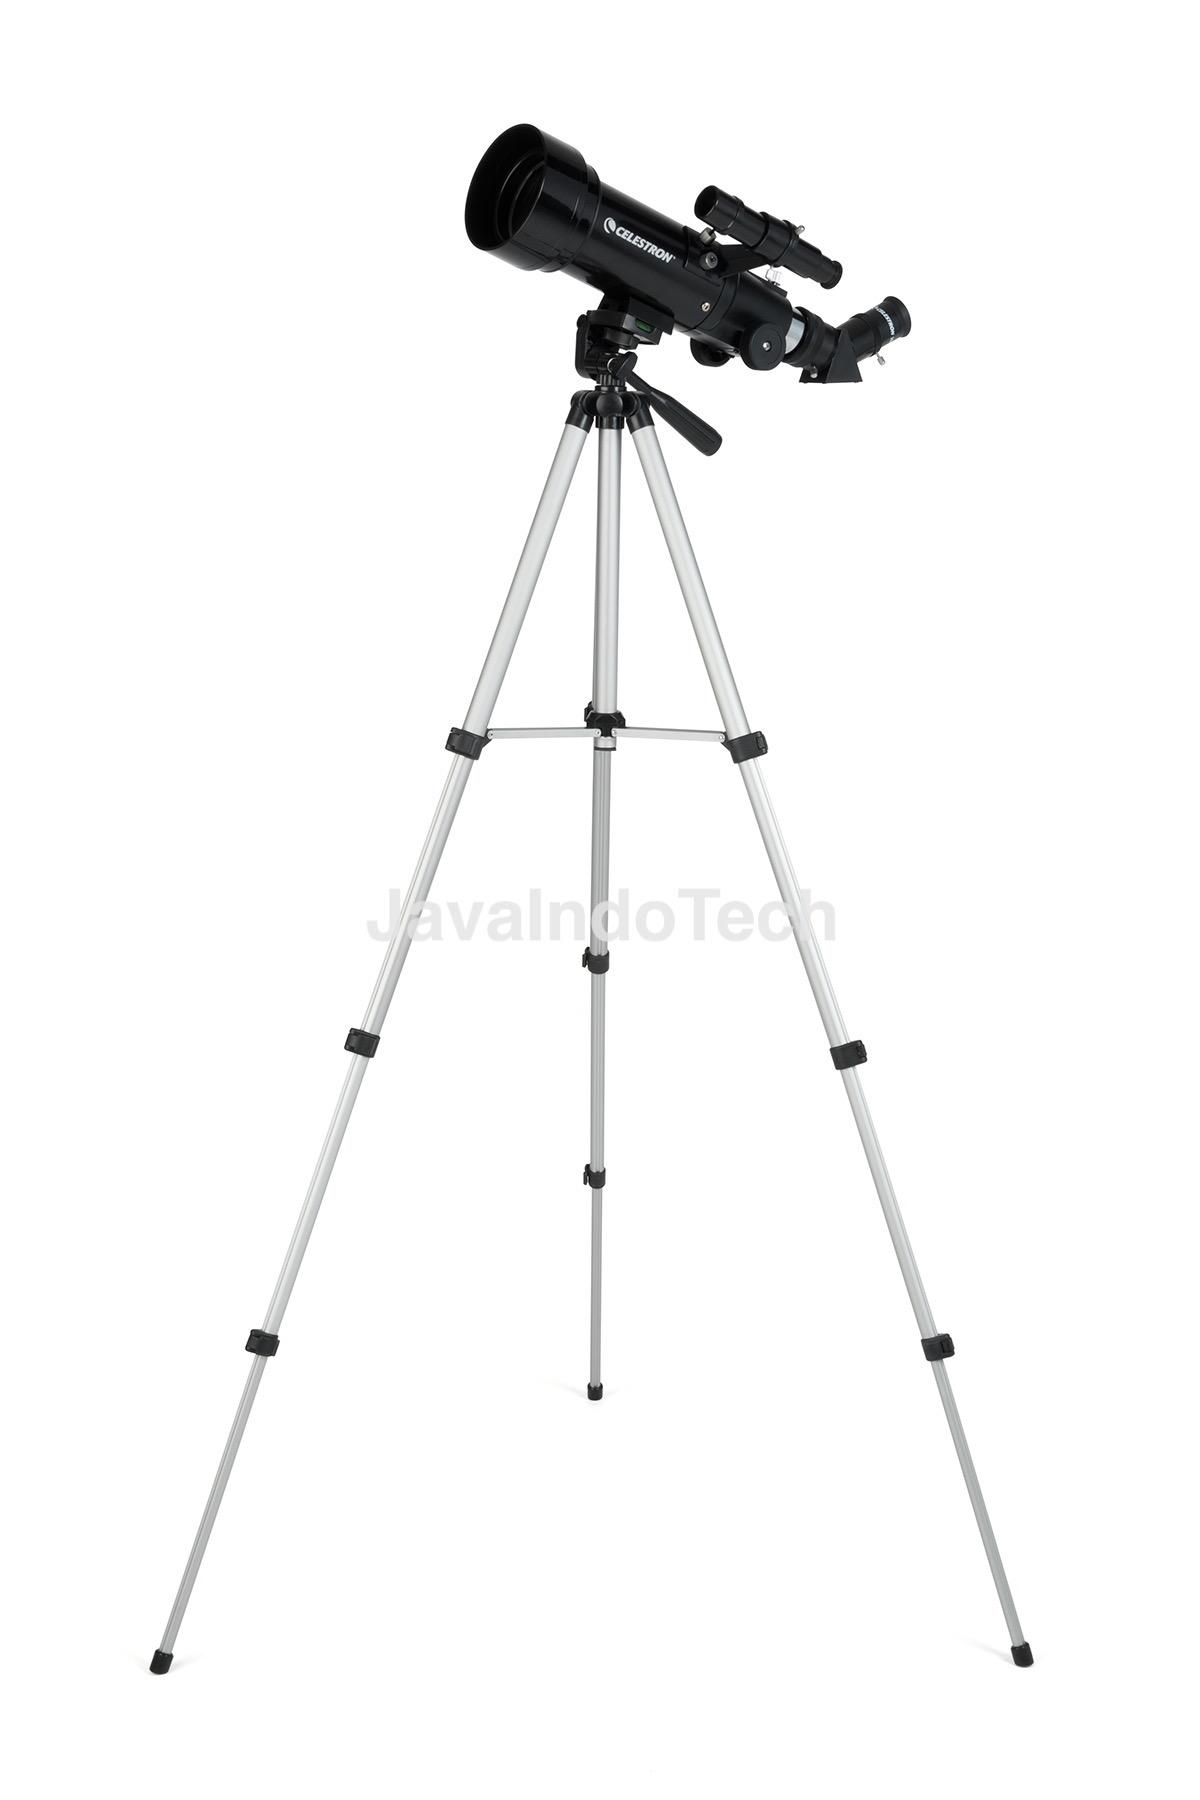 Spesifikasi Teropong Bintang Celestron Travel Scope 70